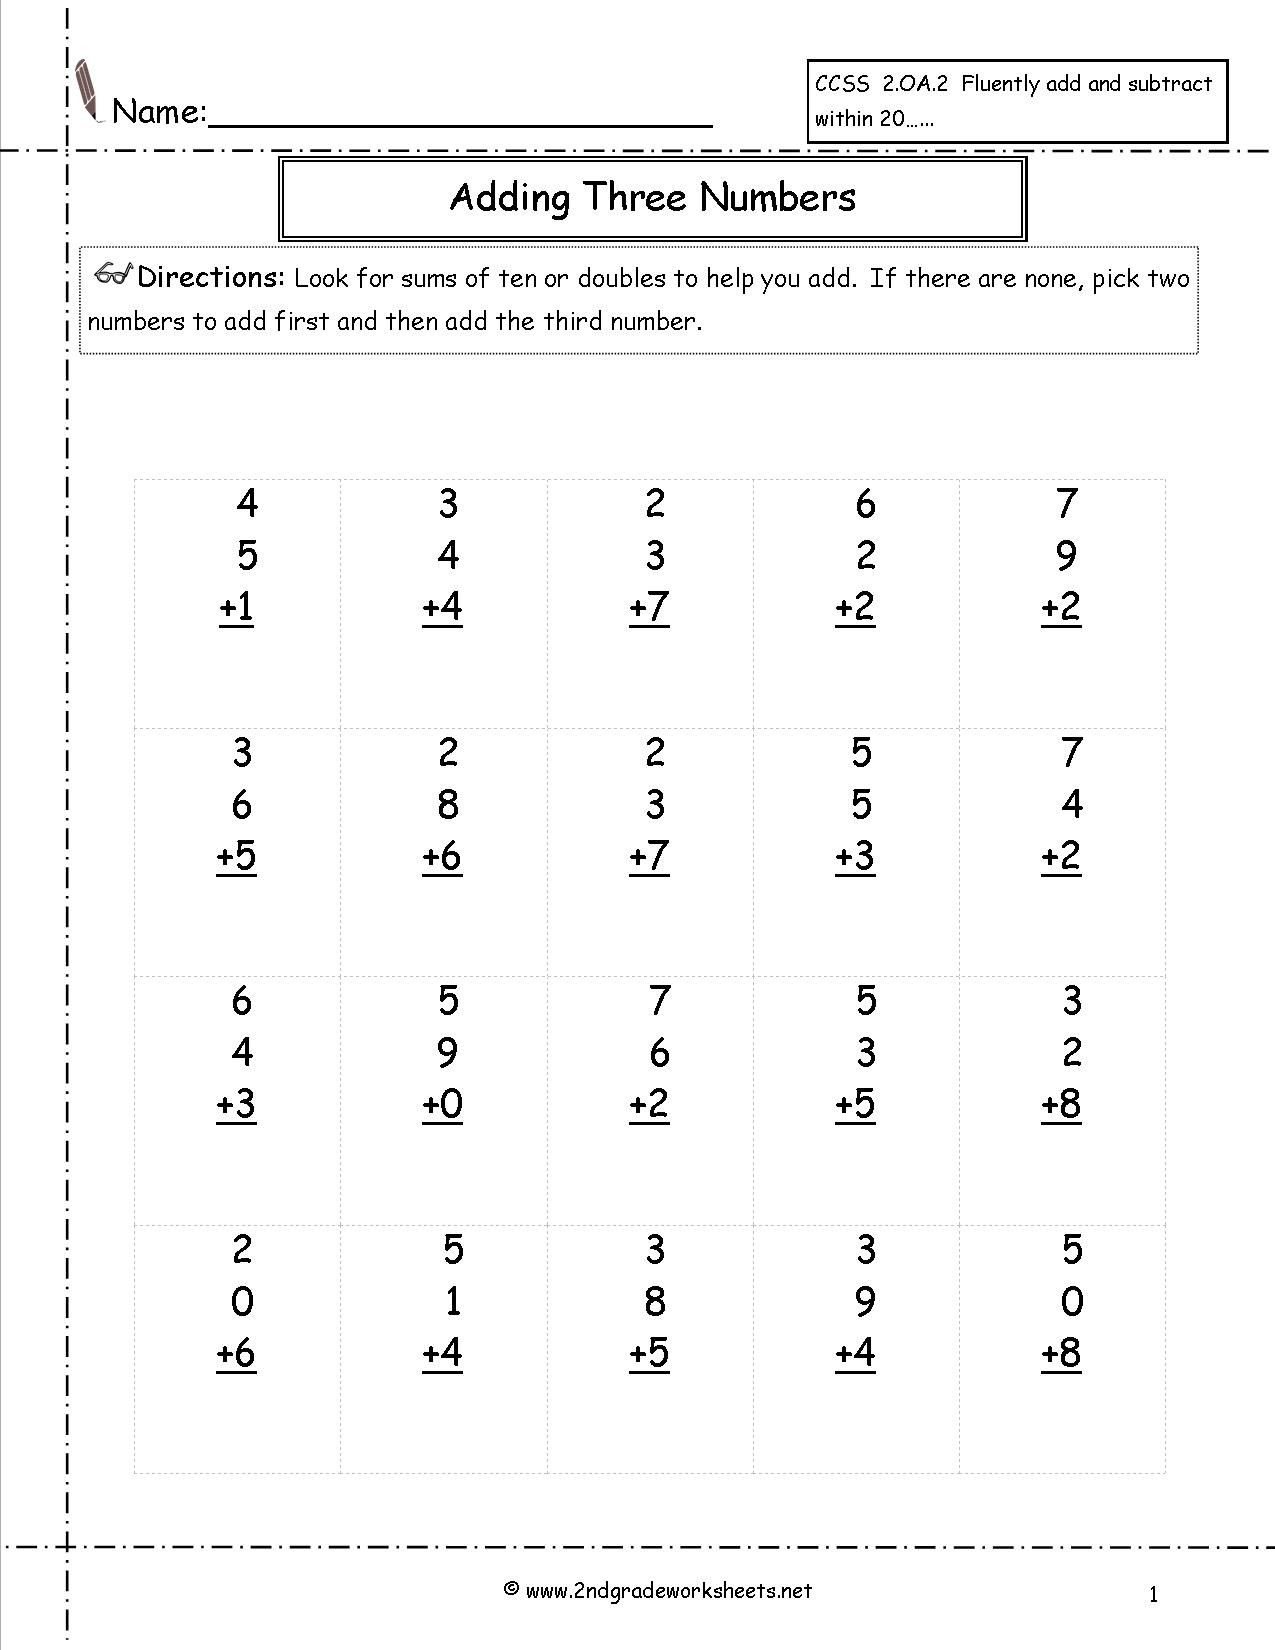 4 Free Math Worksheets Second Grade 2 Addition Add 3 Single Digit